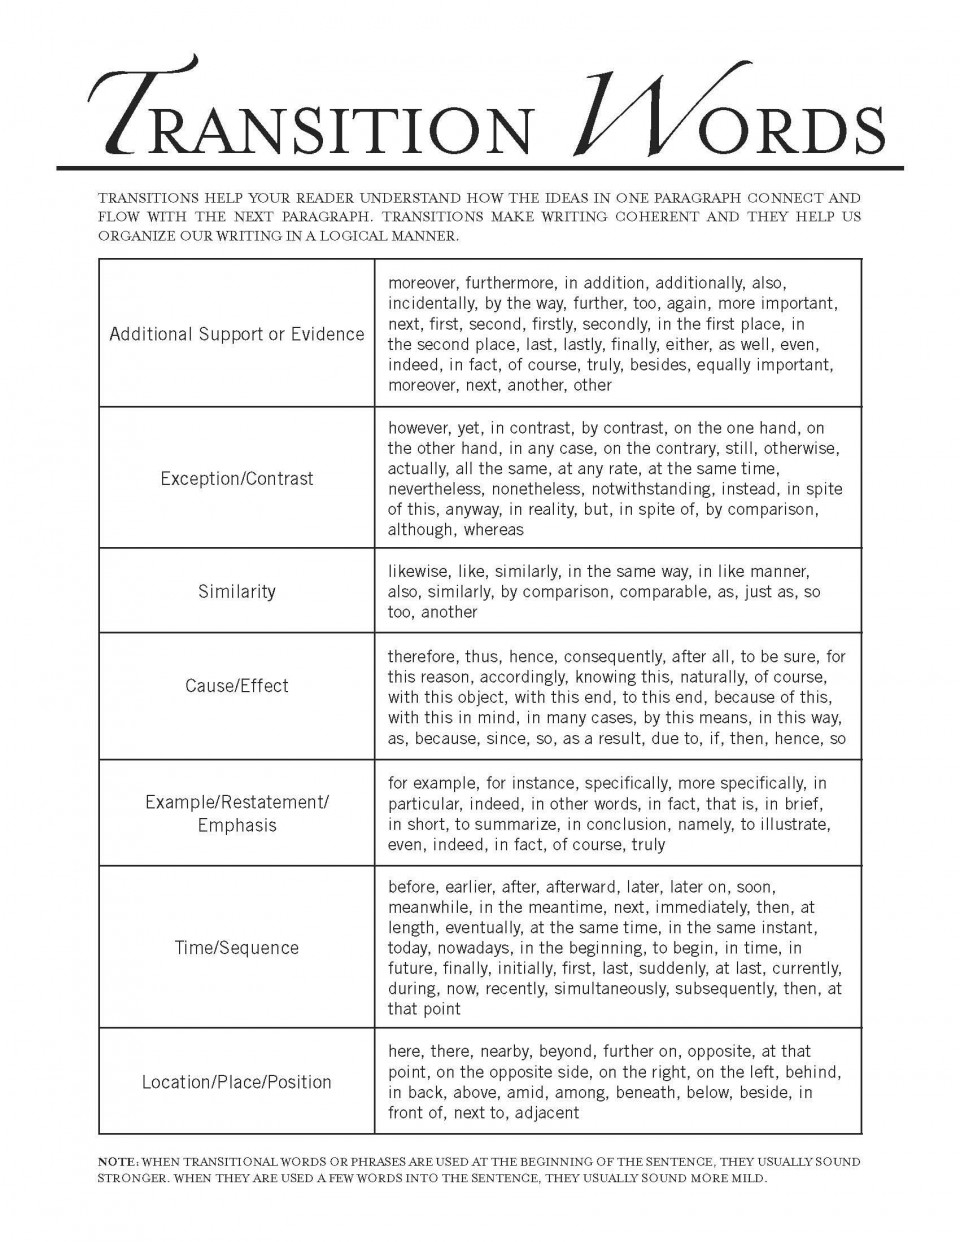 001 Transition Words And Phrases For Essays Essay Amazing Opinion Writing Narrative 5th Grade Expository 960